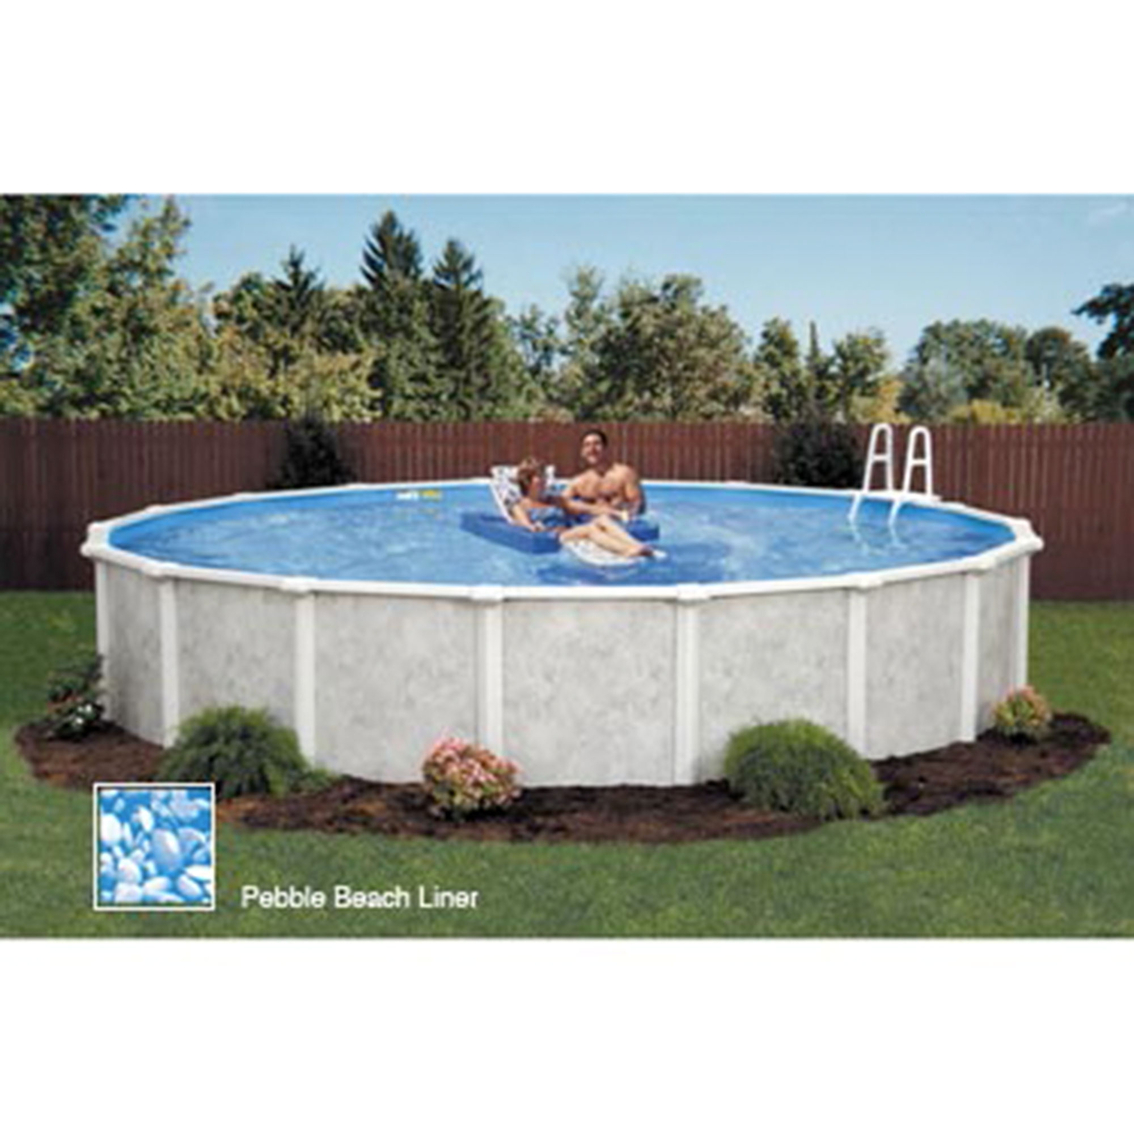 Lomart grey mist round above ground swimming pool package for Pool packages